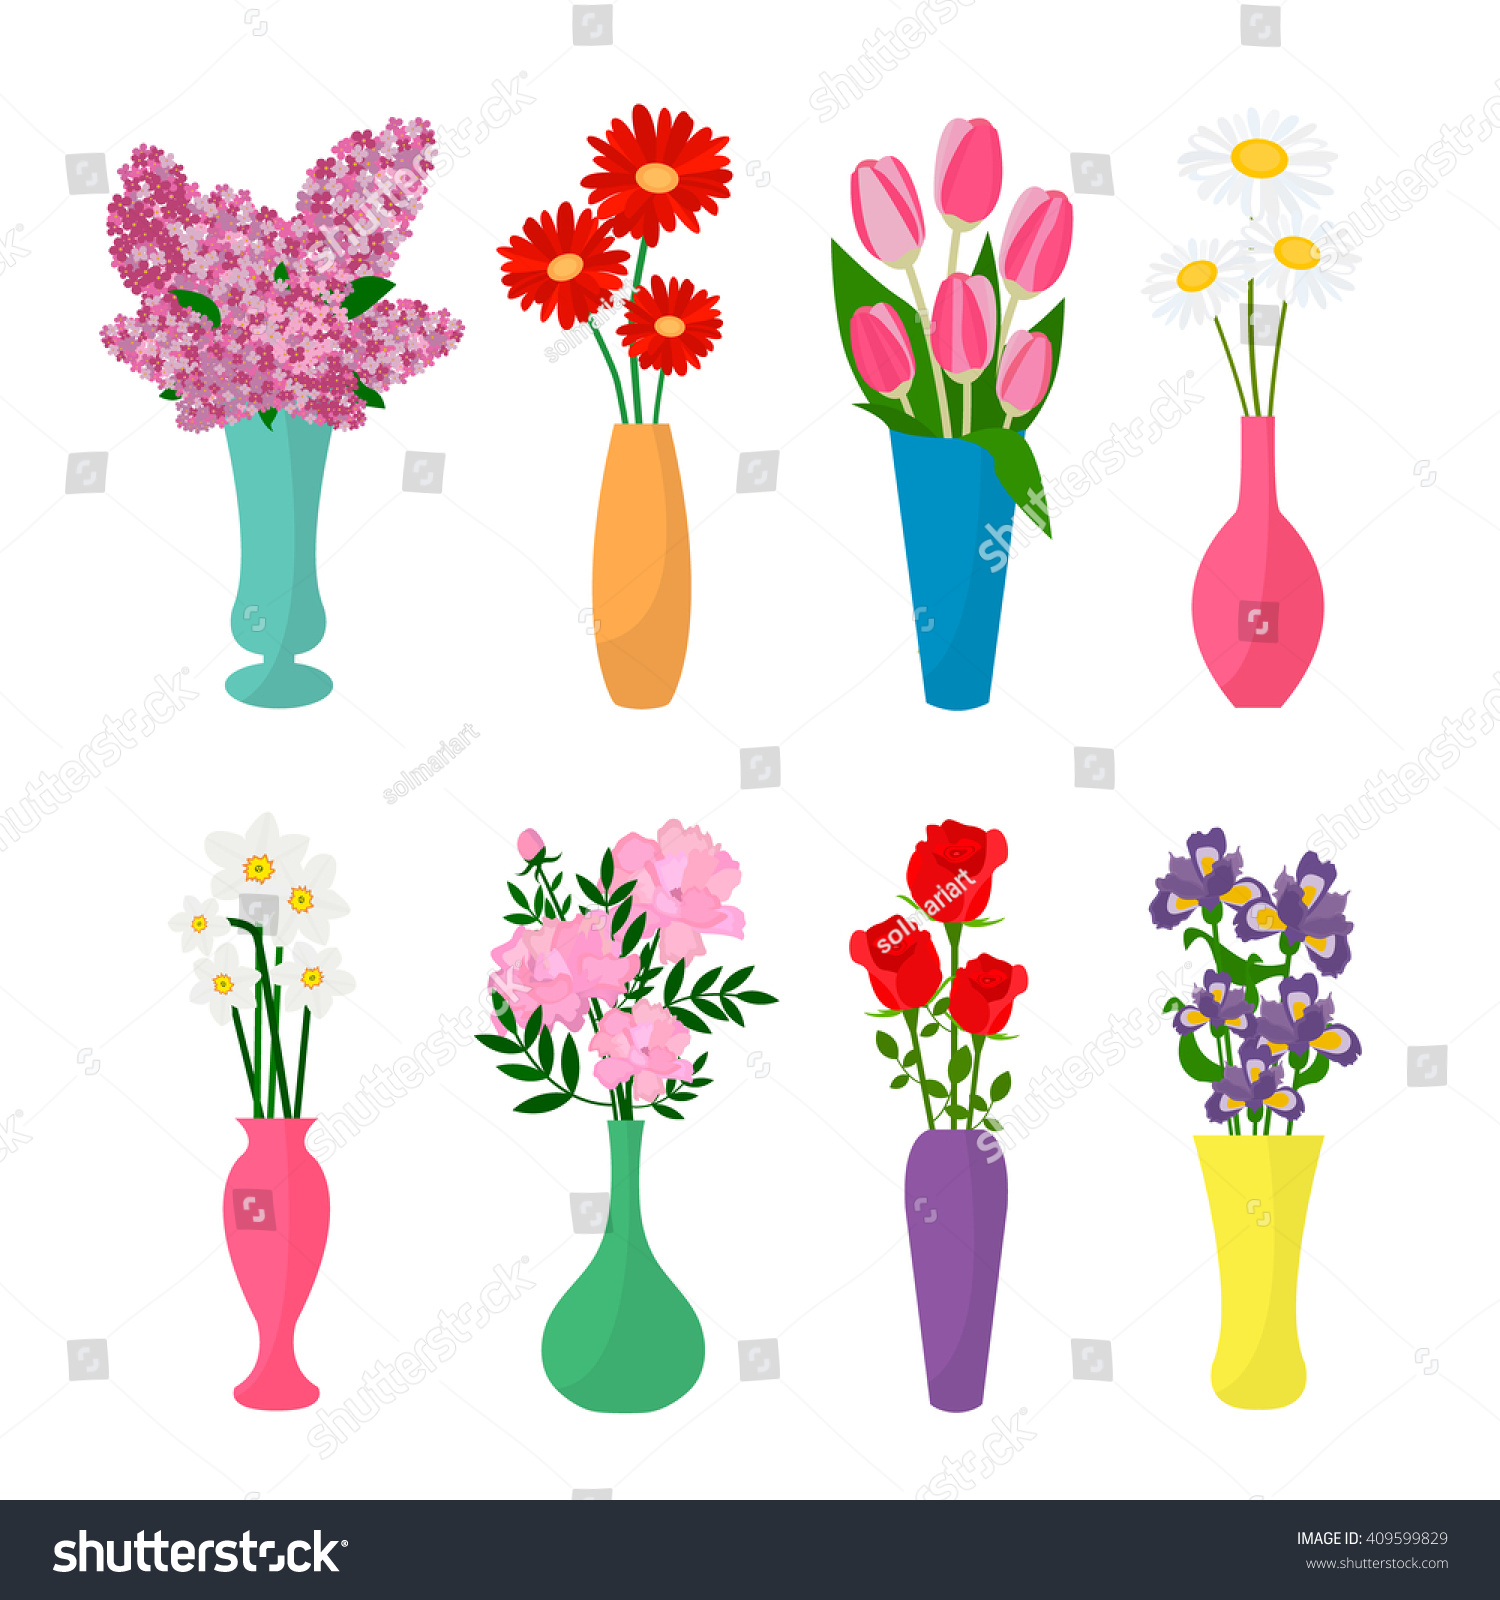 vases labeled clipart player on baseball field jerseys yanhe art diamond clip flowers tag bouquet of blue flower vase pin images sliding page